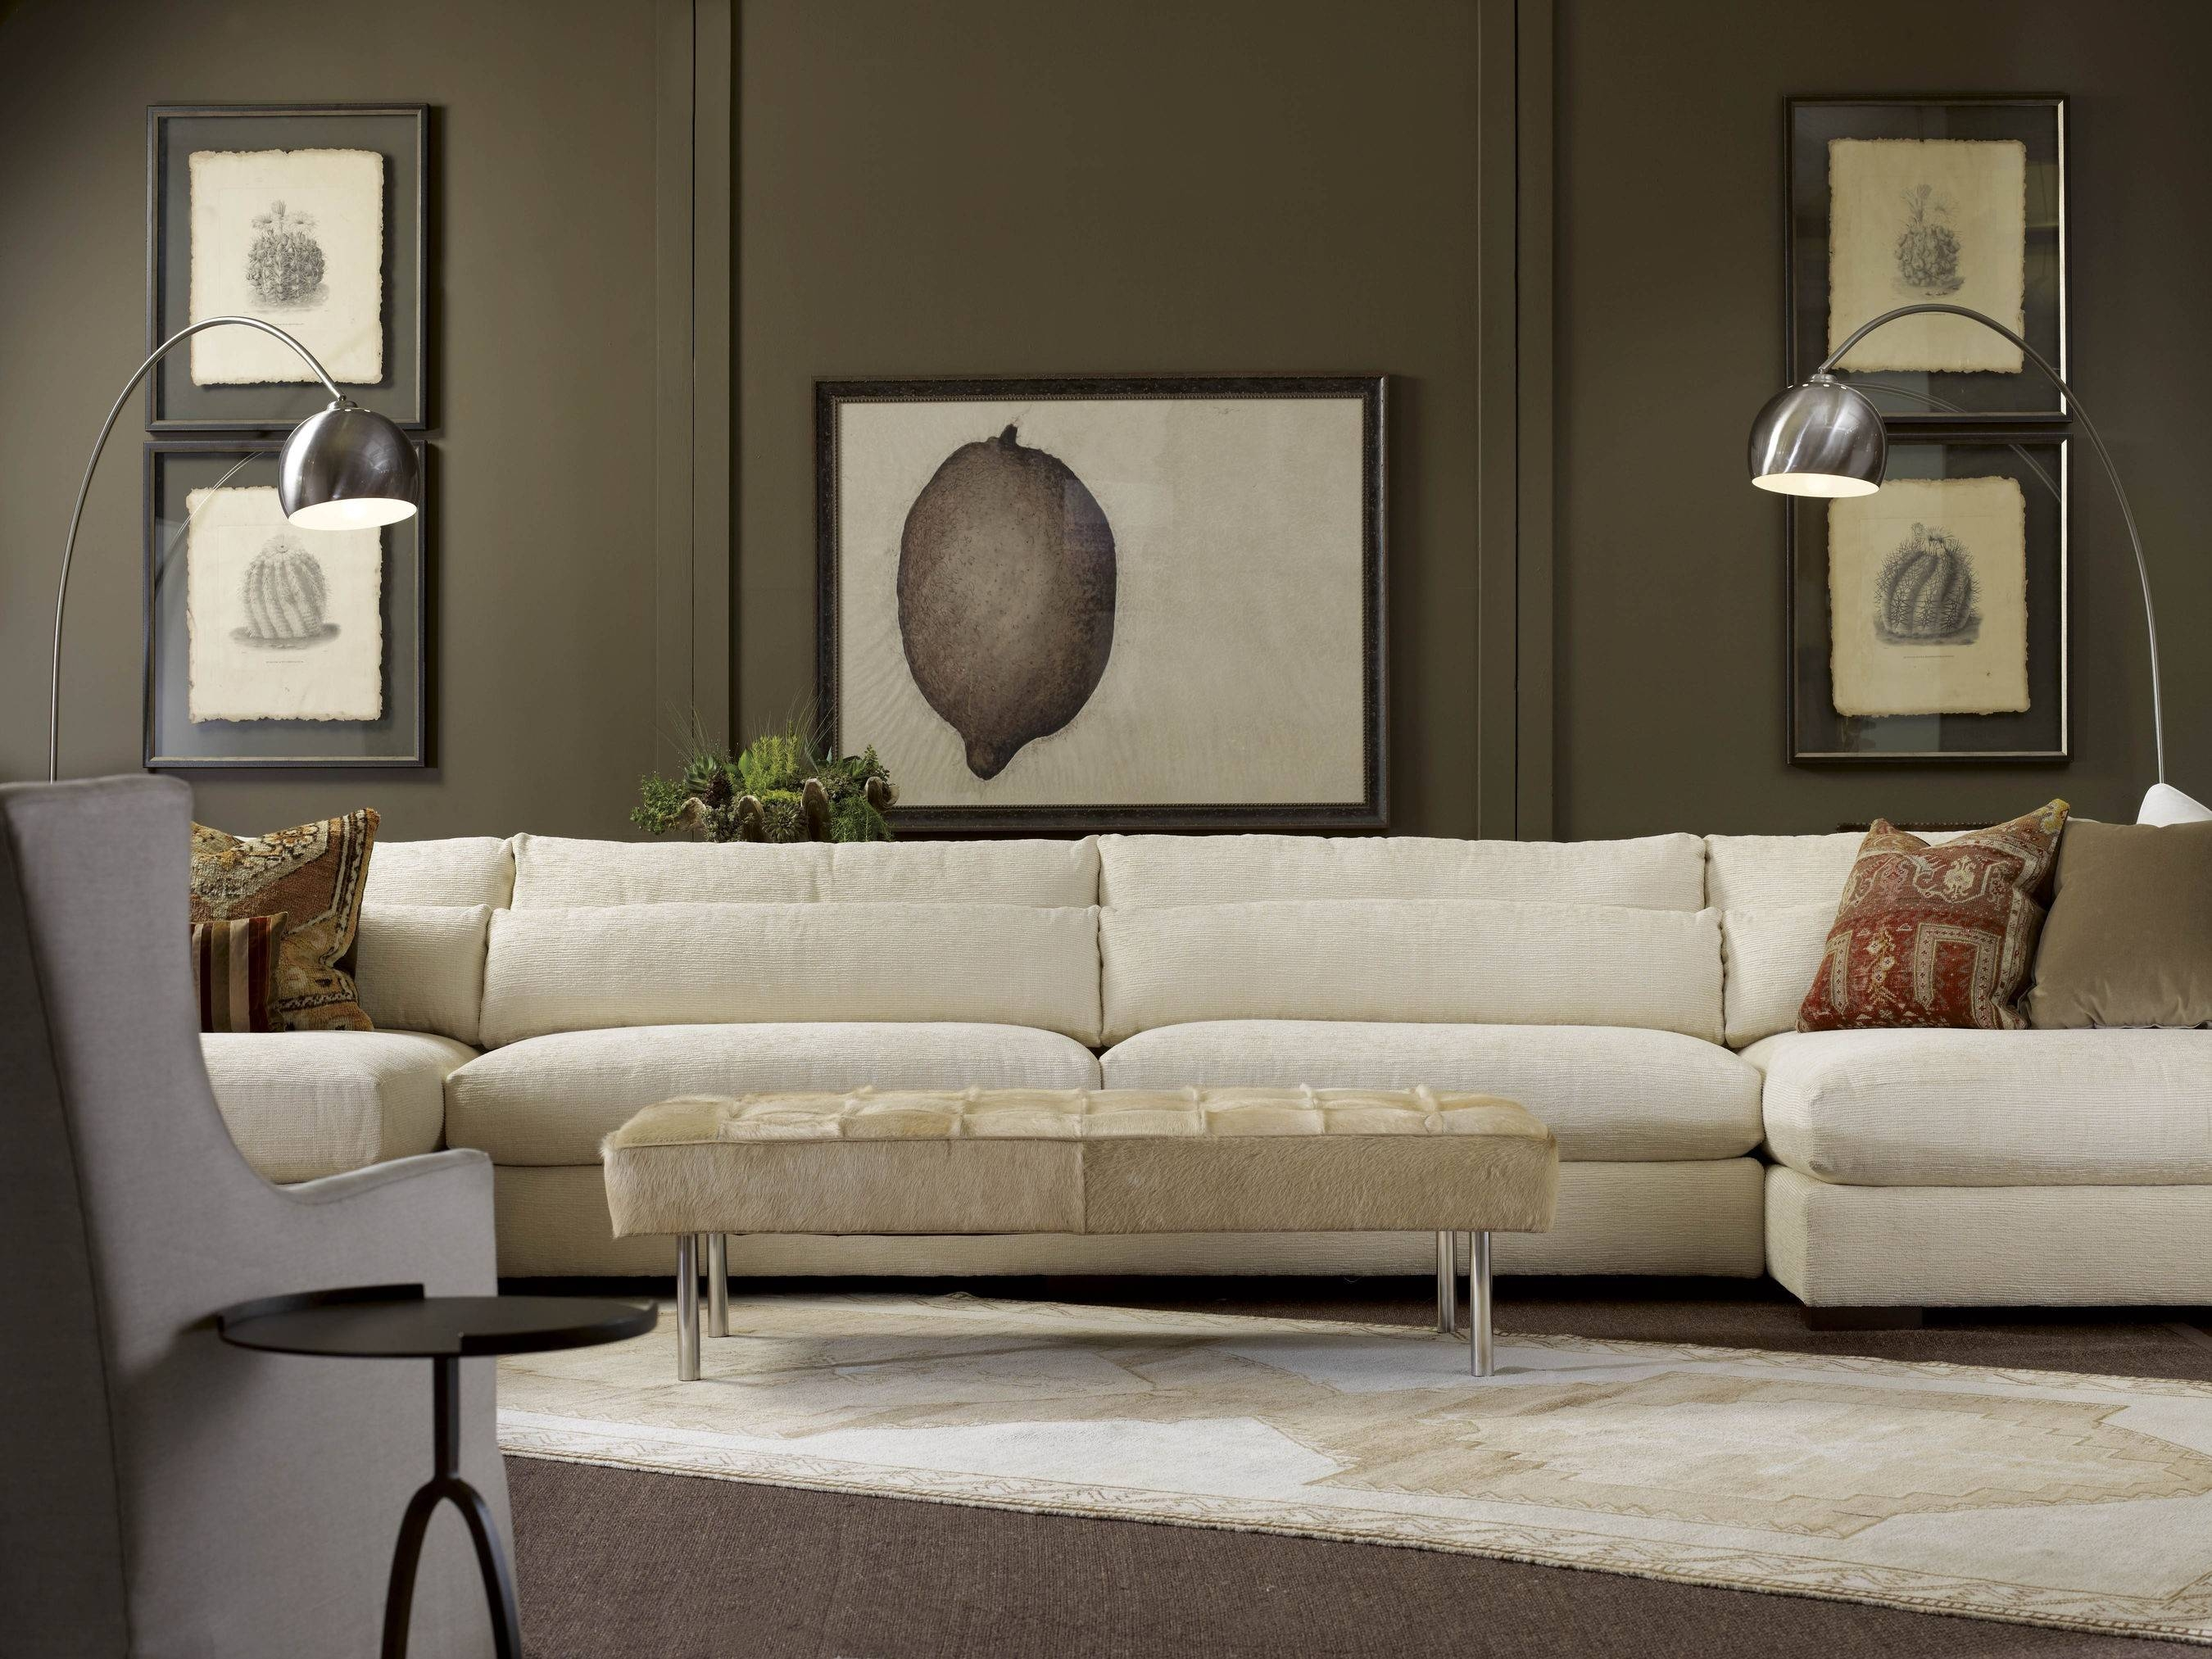 American Furniture | Menlo Park Double Sectional | Lee Industries intended for Lee Industries Sectional Sofa (Image 2 of 25)